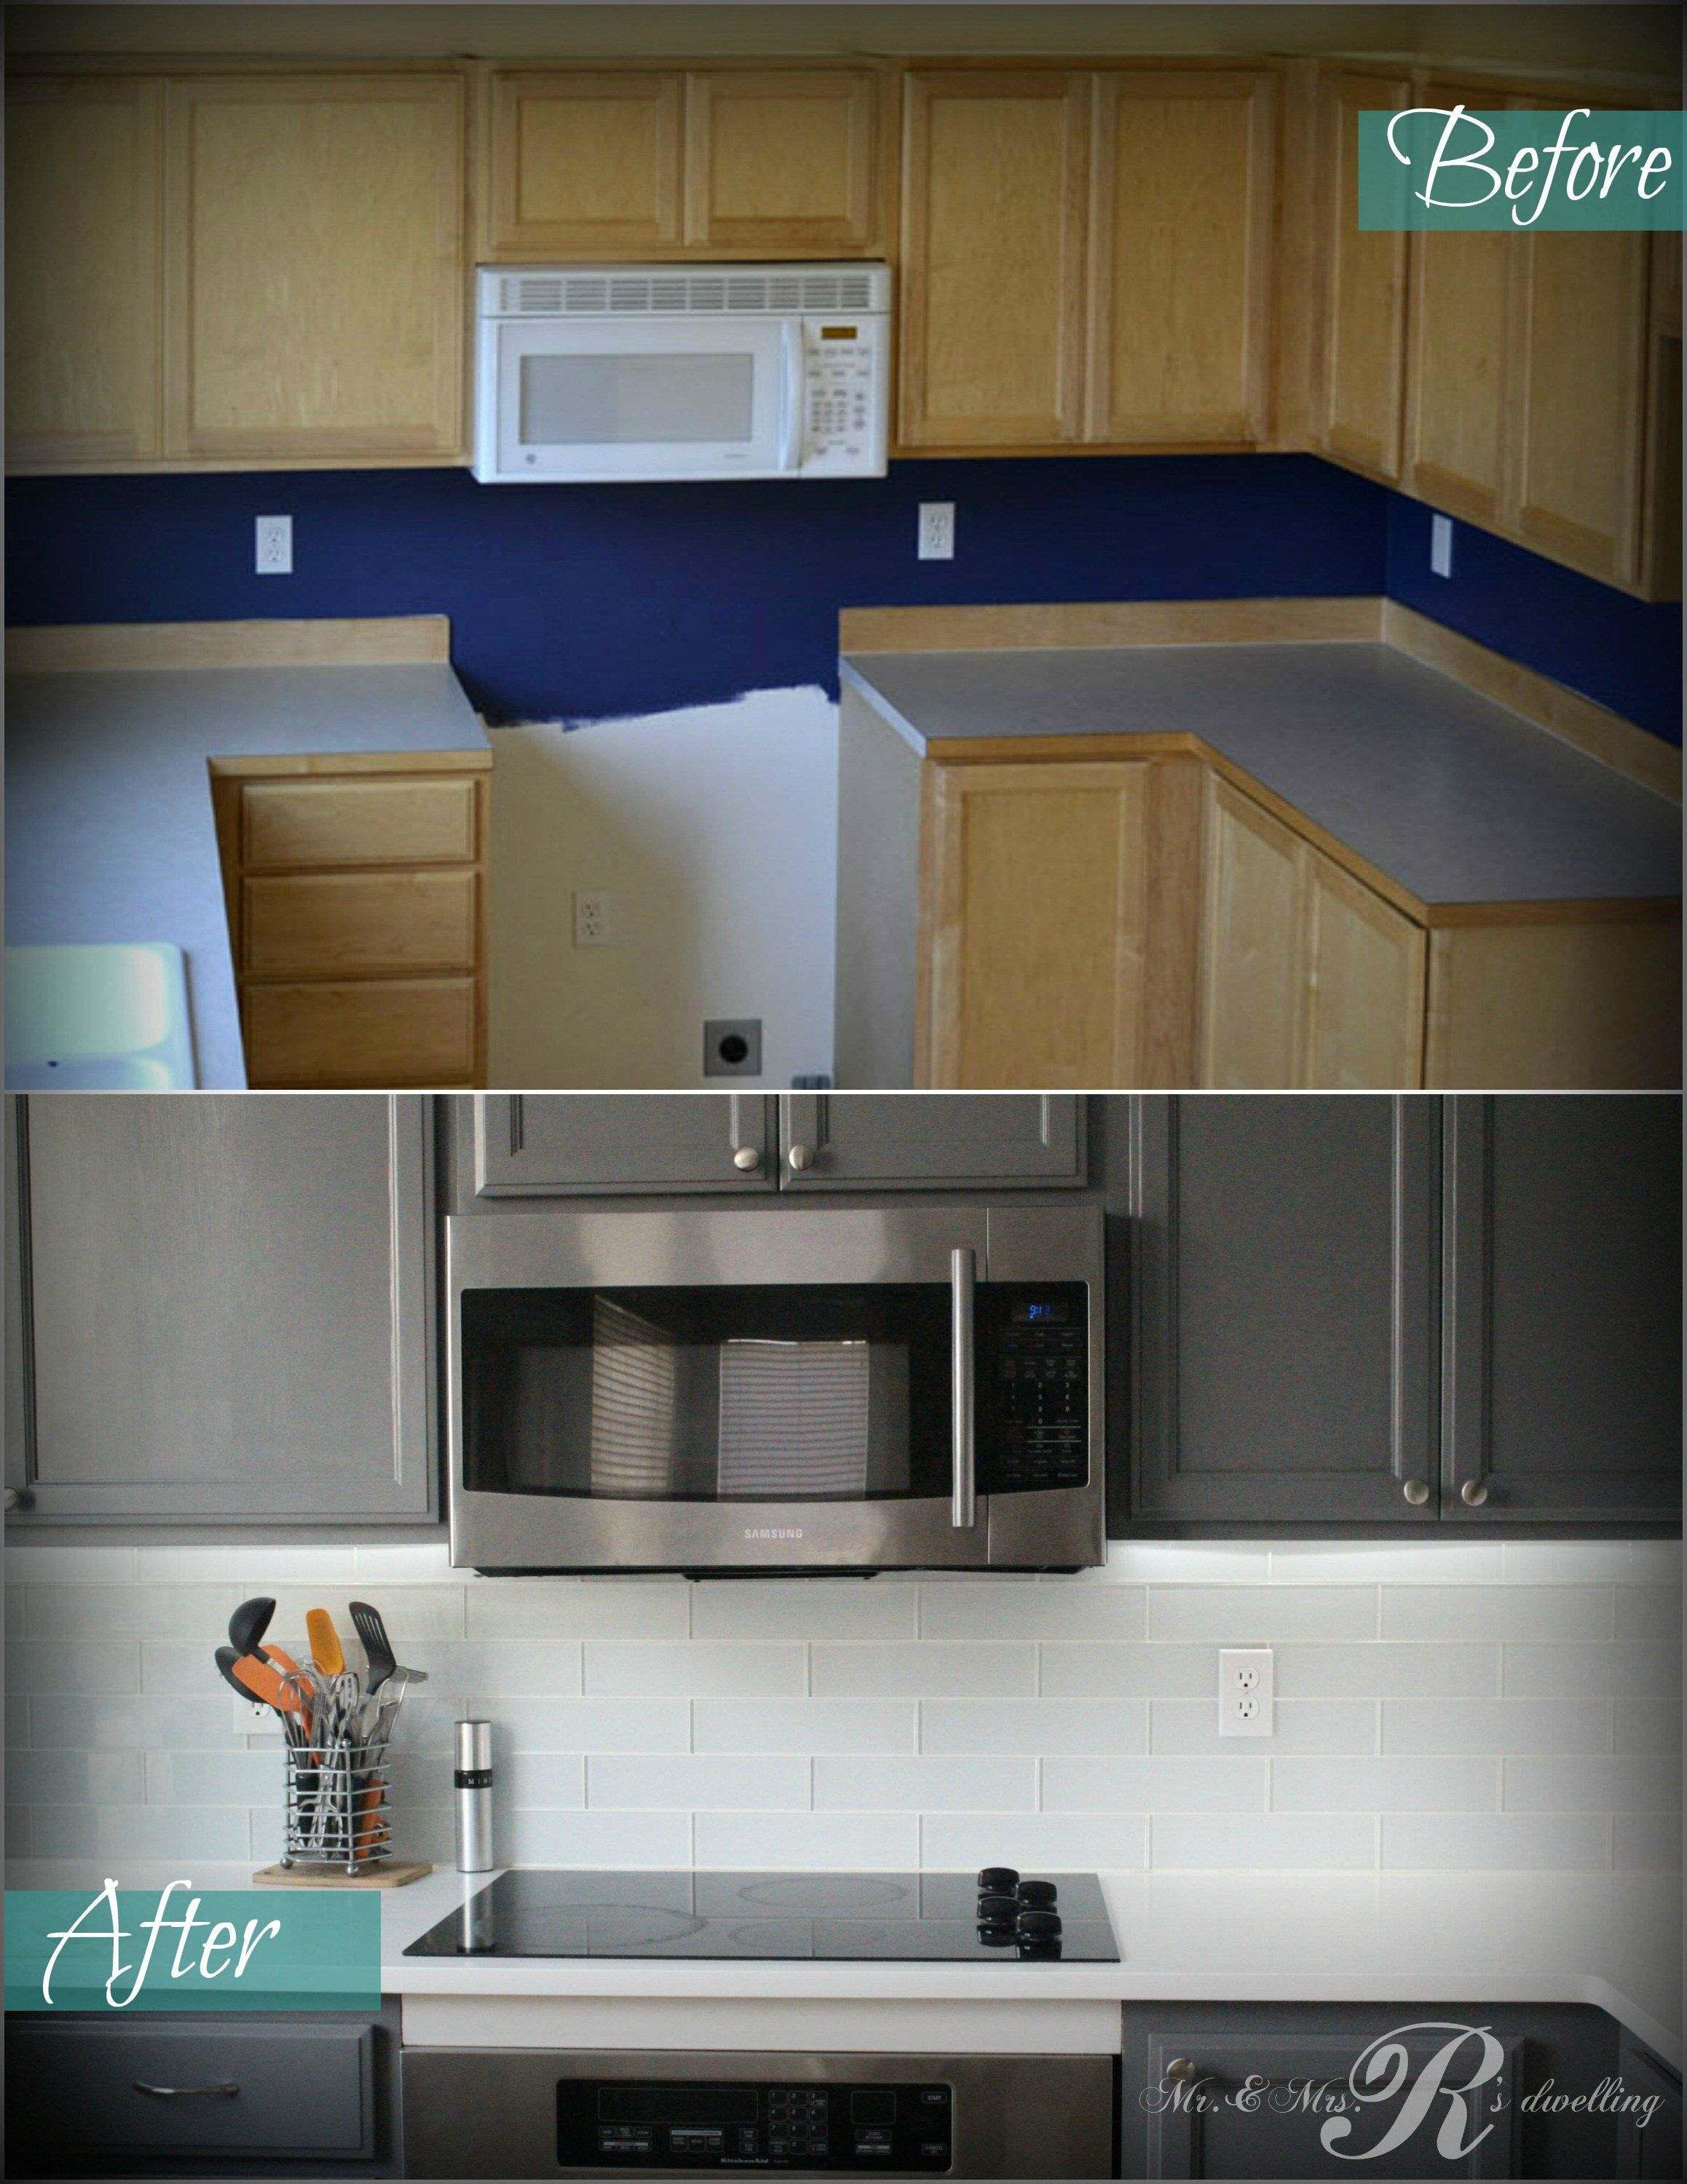 redo images with designs how budget on decorating design marvelous house home to interior new in a cabinets kitchen amazing modern